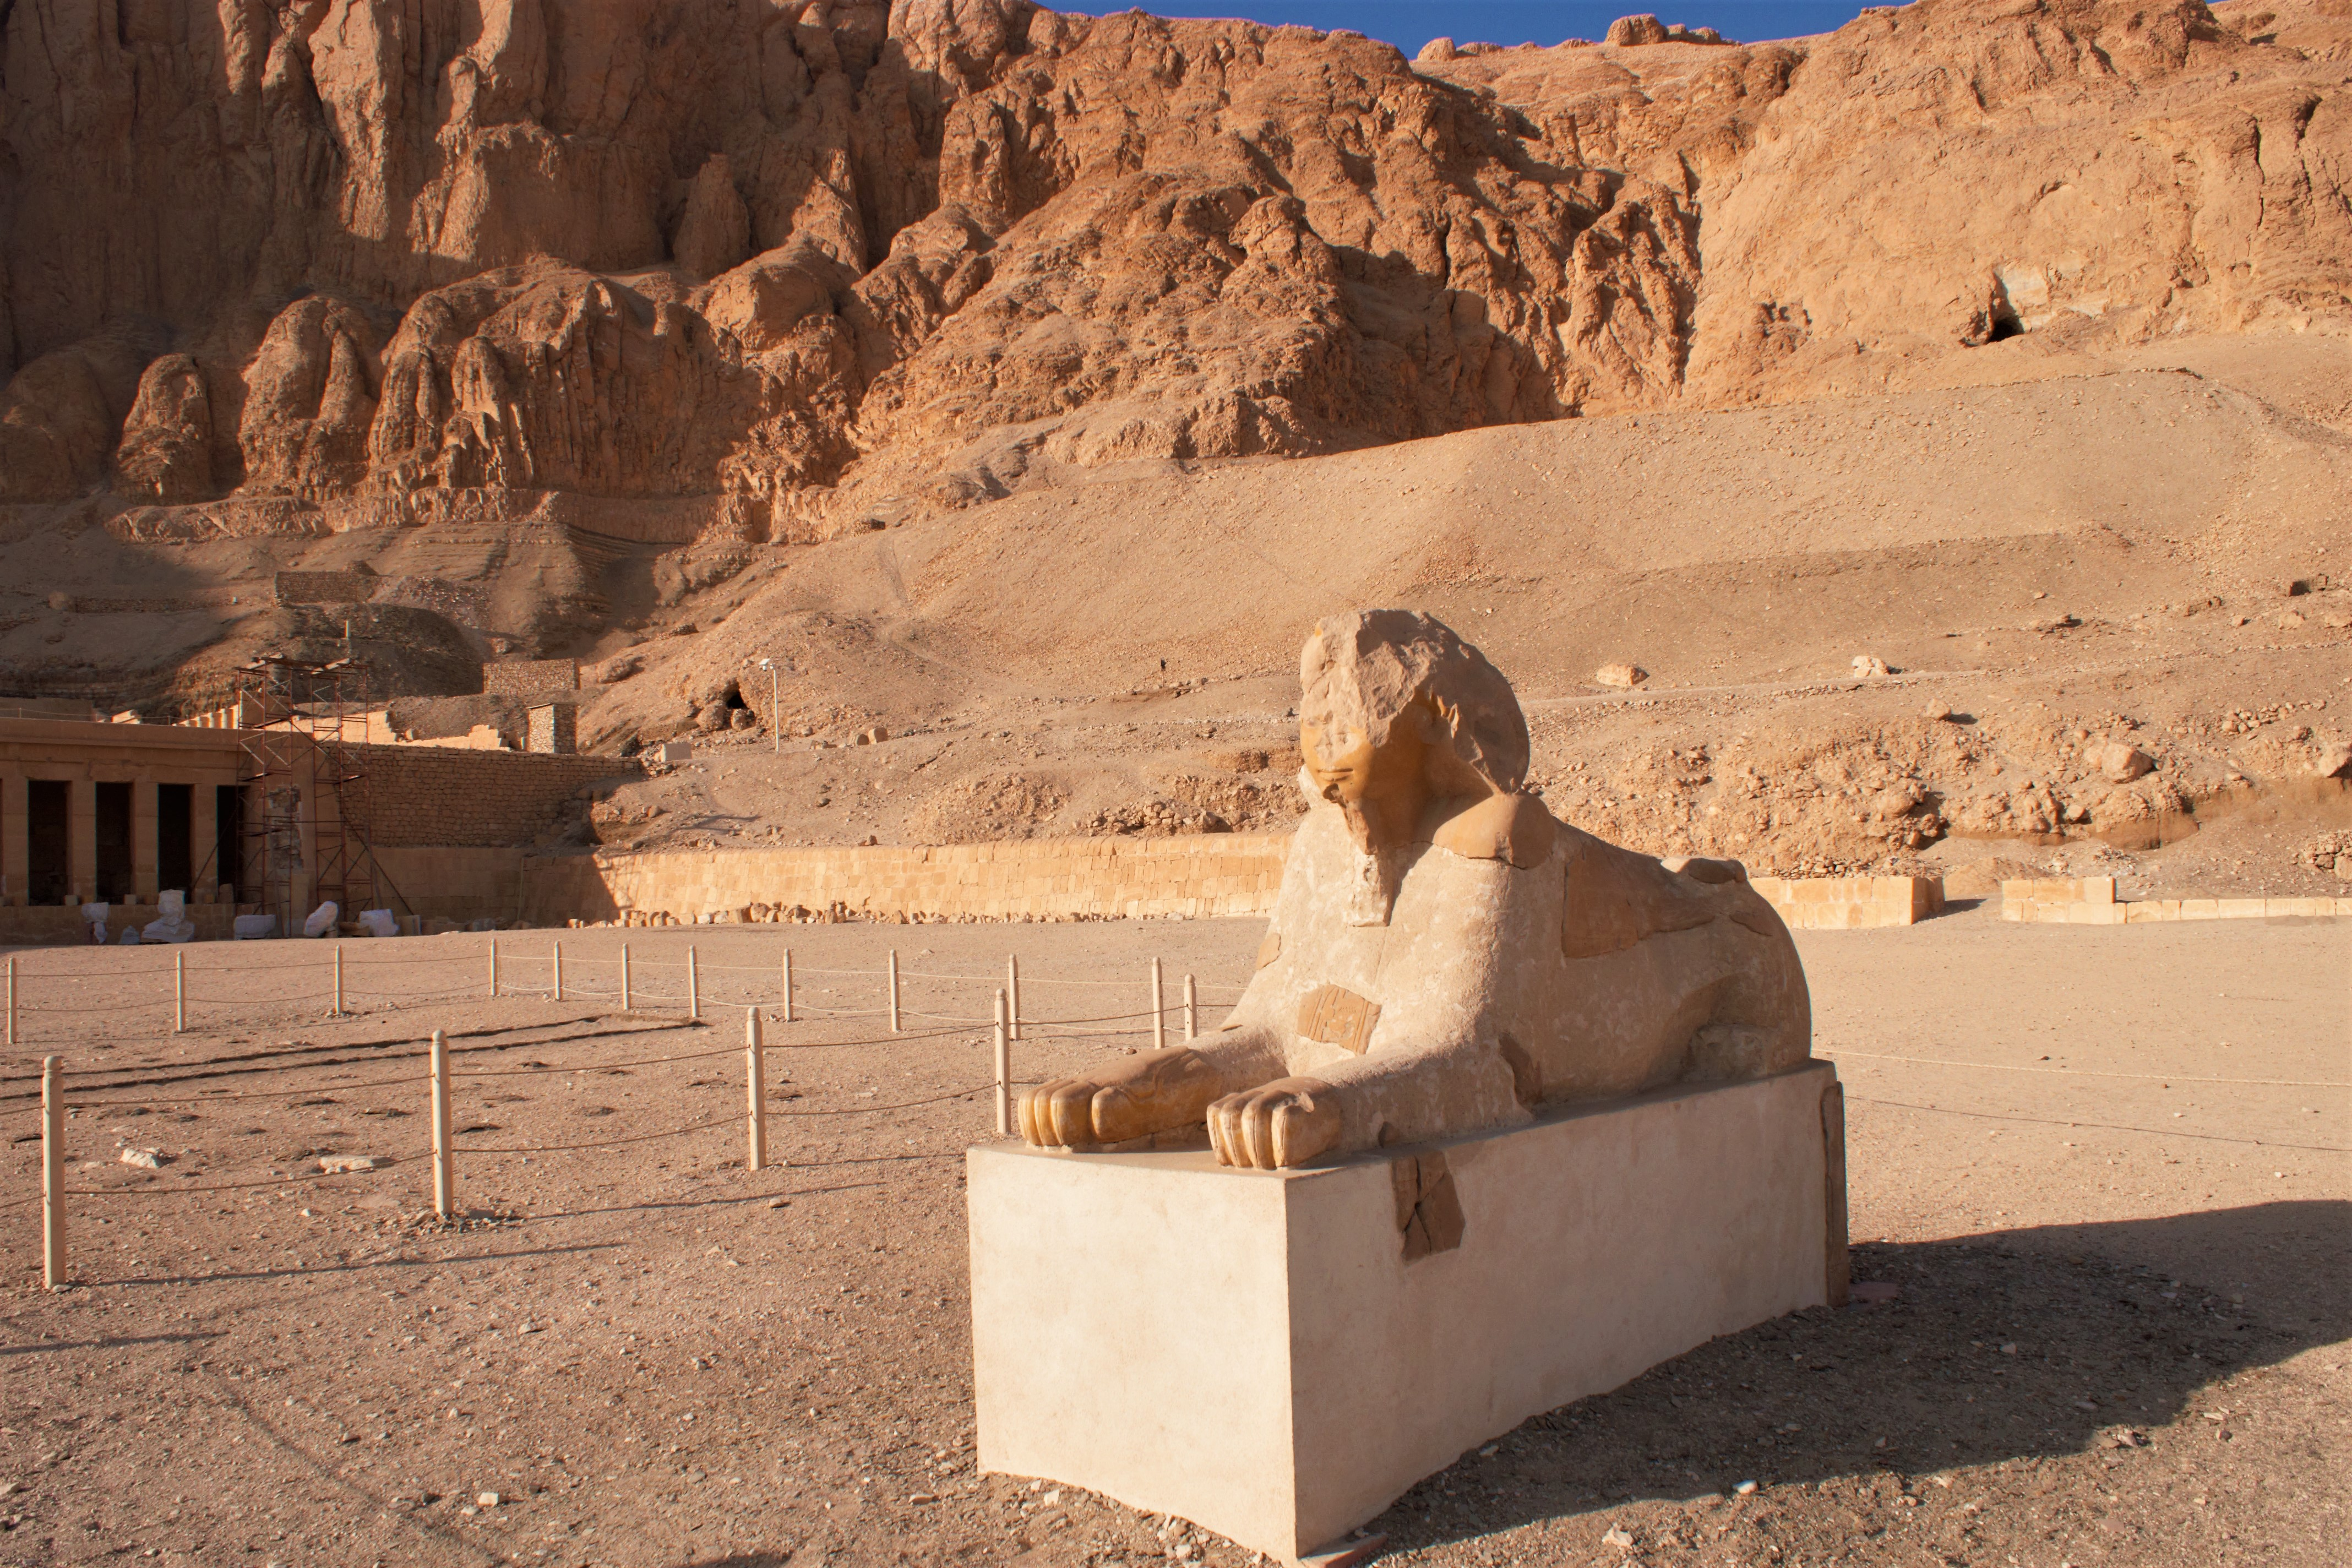 Hatchepsut's existance was proven only in 19th century CE.